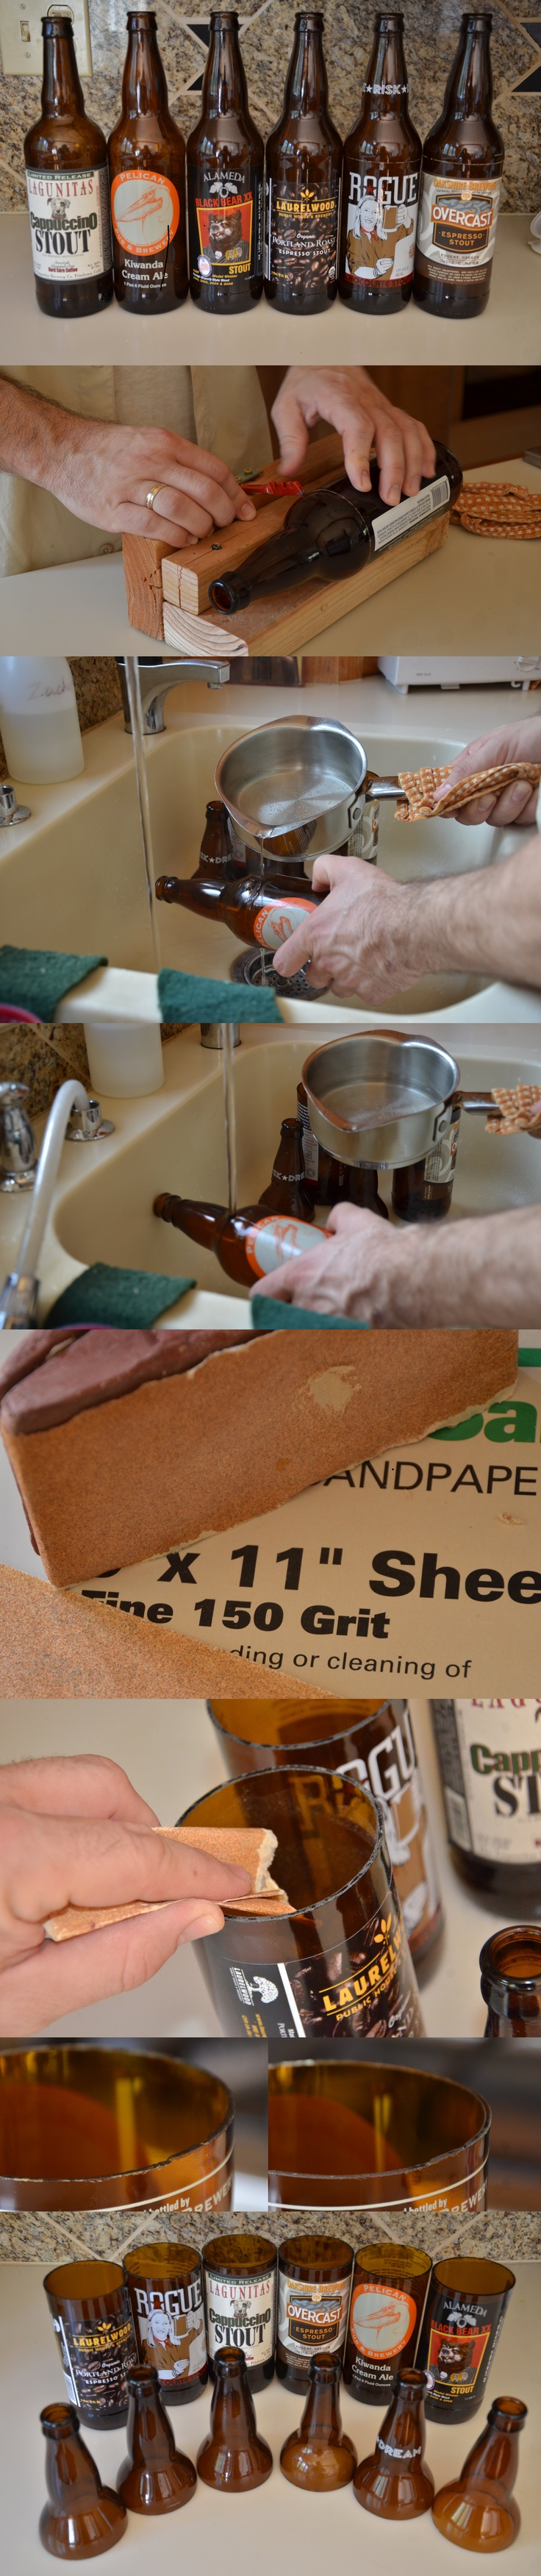 Making planters for the office out of 22oz beer bottles.  Score with a single pass of a glass cutter (I built a jig out of some scrap wood.)  Slowly pour boiling water over the score line.  Once heated, run under cold tap water.  Once cooled, begin repouring boiling water over bottle and *pop*, the top drops off.  Now smooth the edges with 150 grit sand paper and you're done.